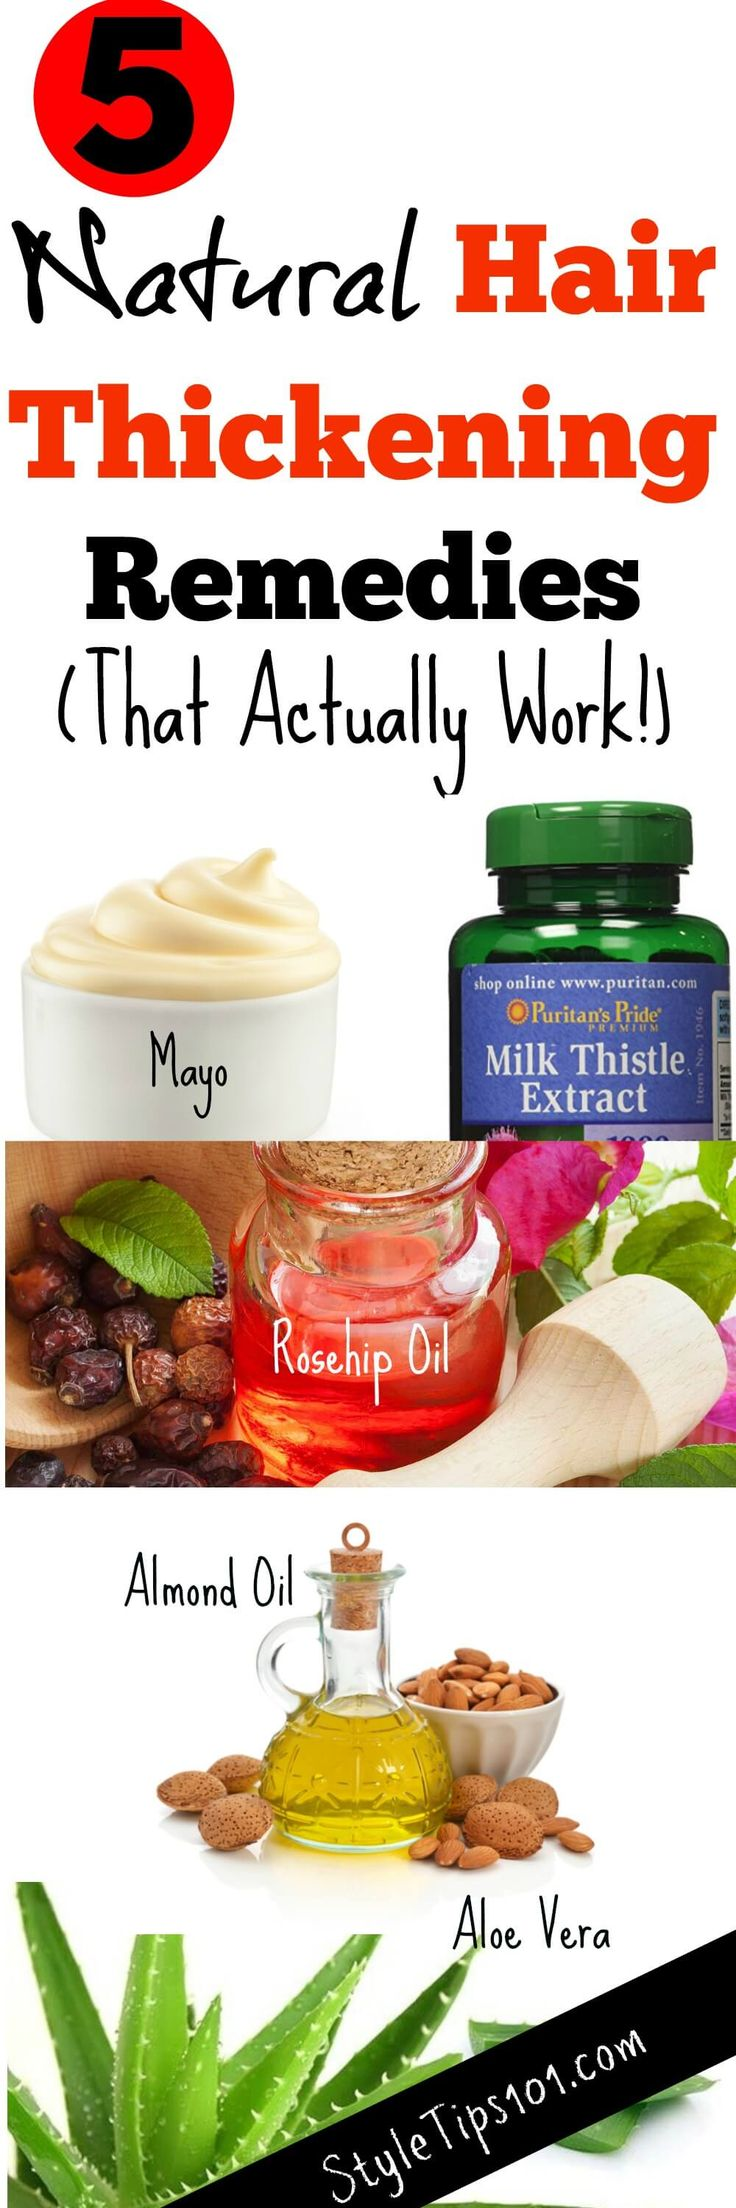 Hair Thickening Remedies